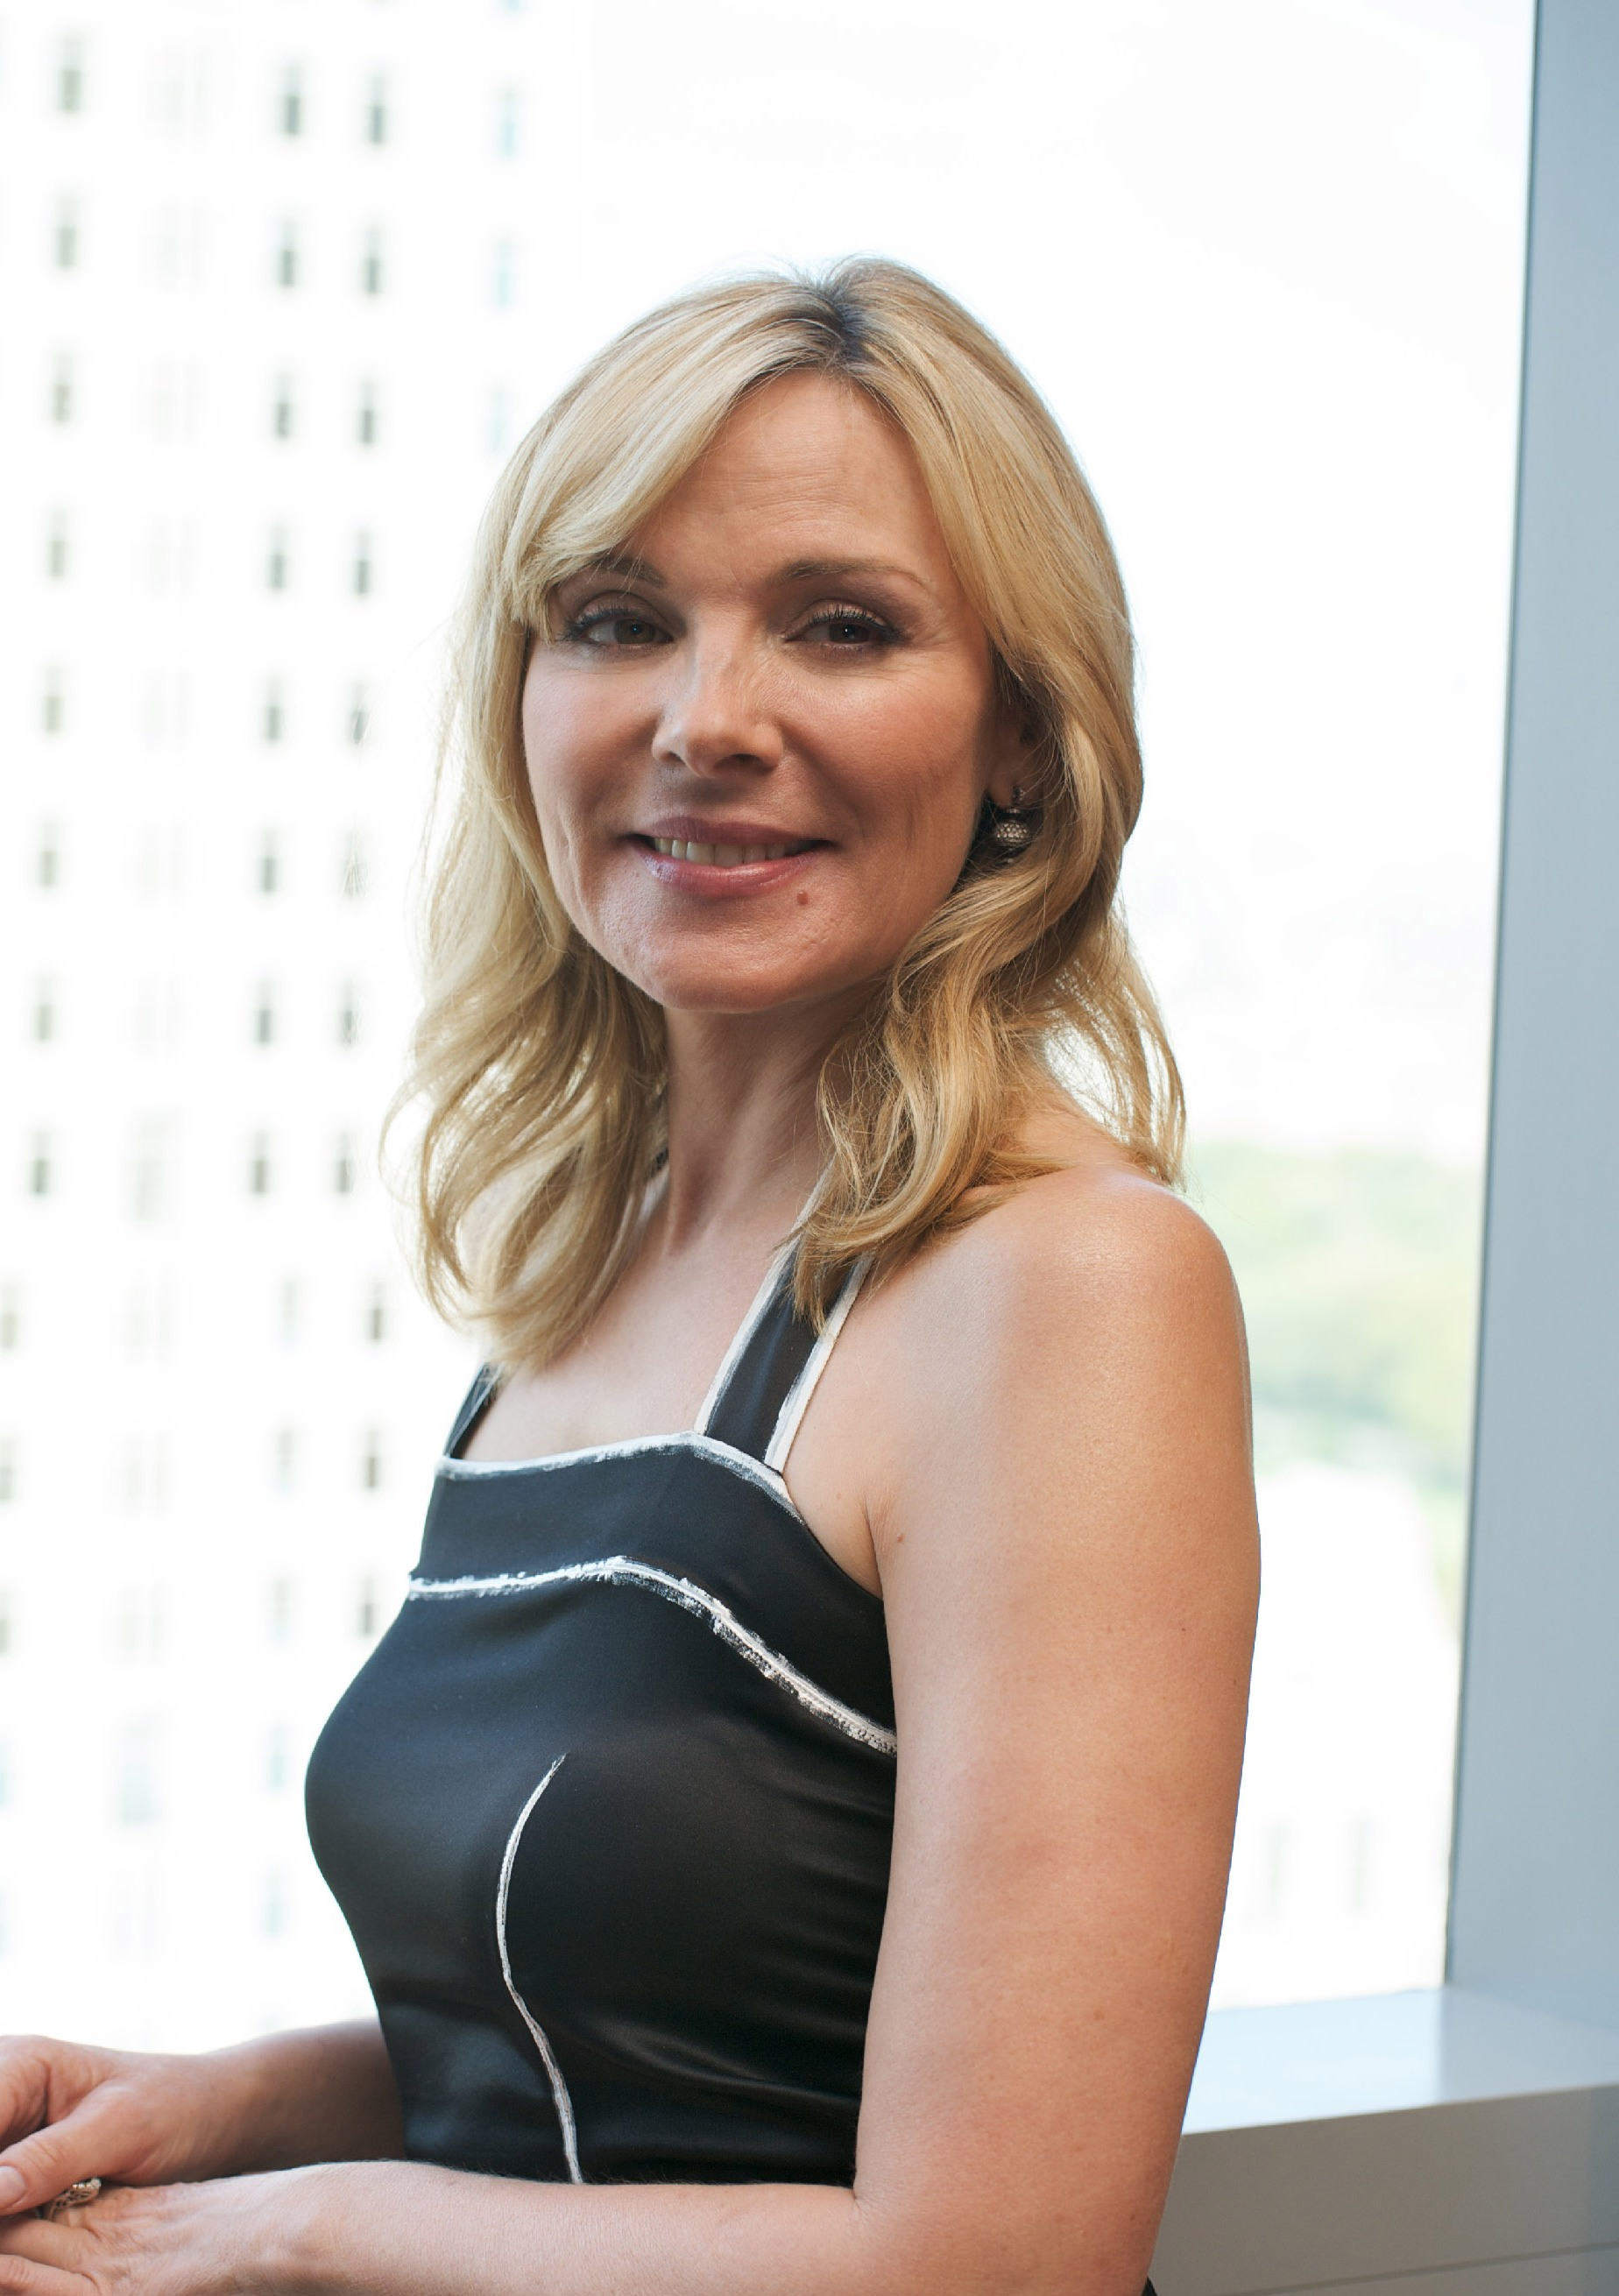 Kim Cattrall photo gallery - page #5 | ThePlace Kim Cattrall